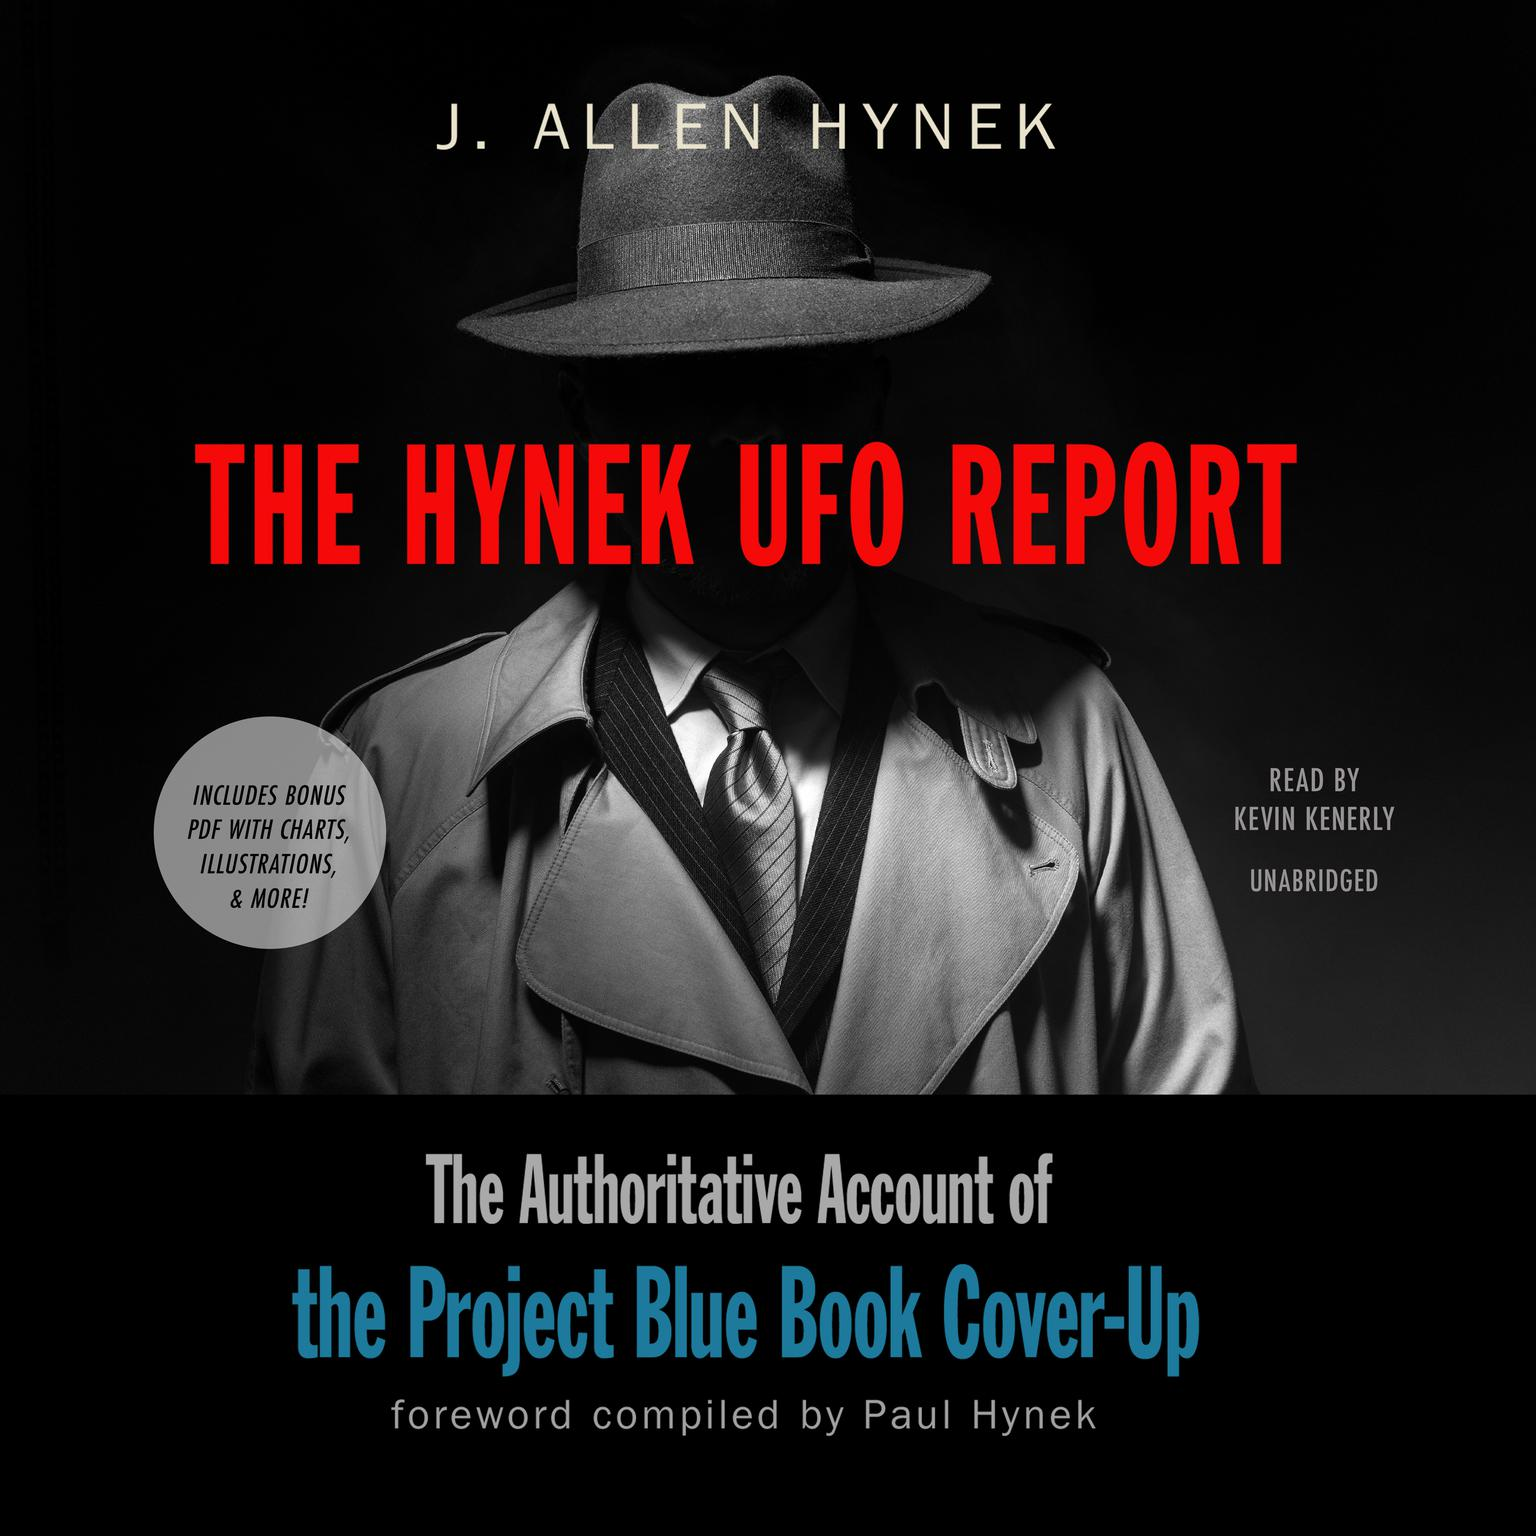 The Hynek UFO Report: The Authoritative Account of the Project Blue Book Cover-Up Audiobook, by J. Allen Hynek